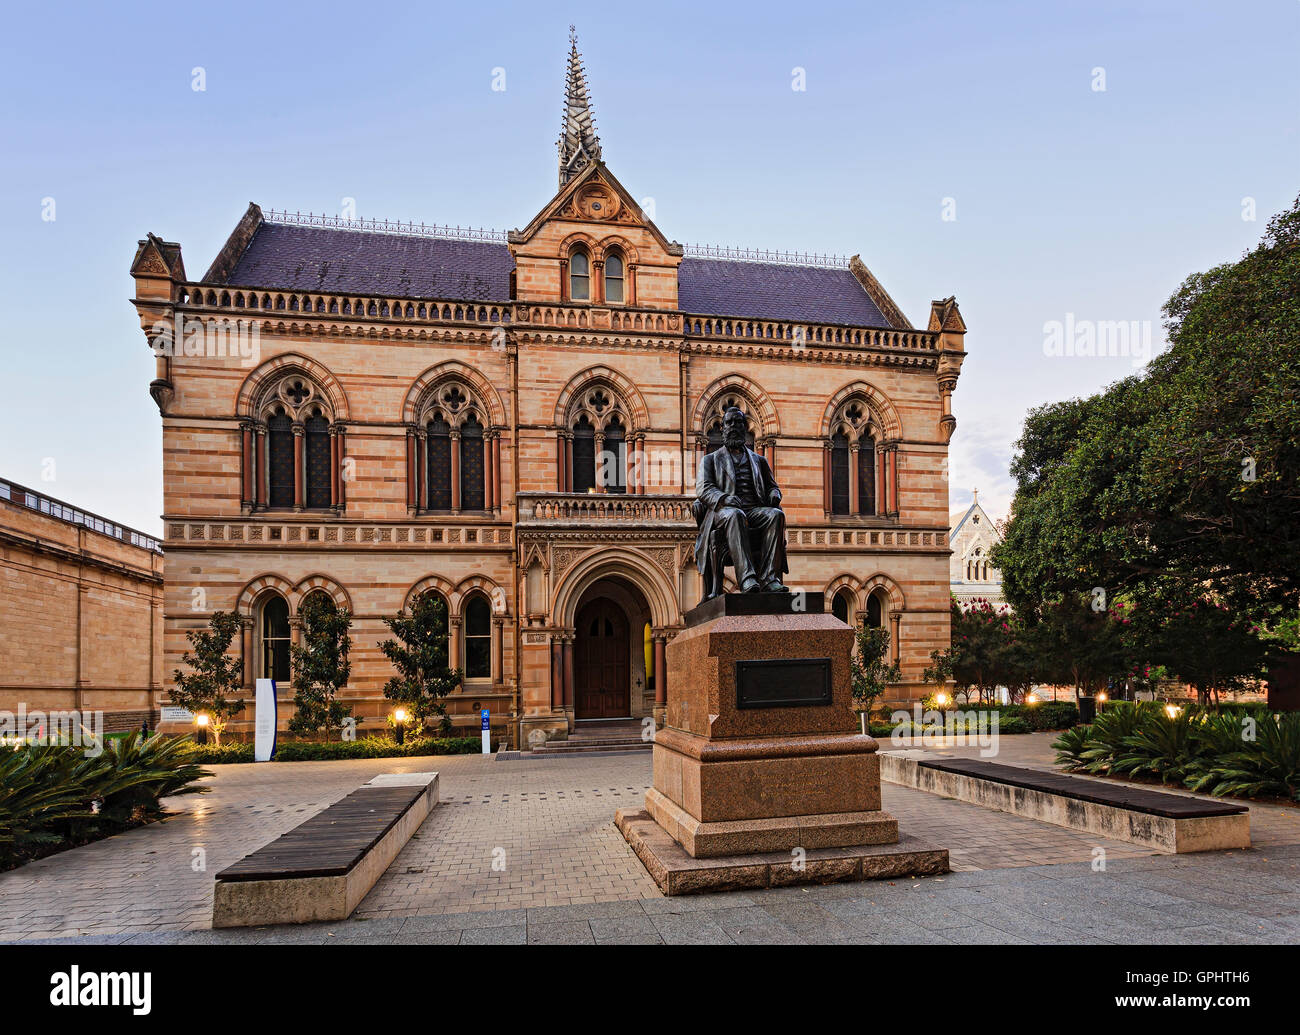 Facade of Adelaide public servcies building- museum of Archeology with the status of Walter Hughes at the entrance. - Stock Image